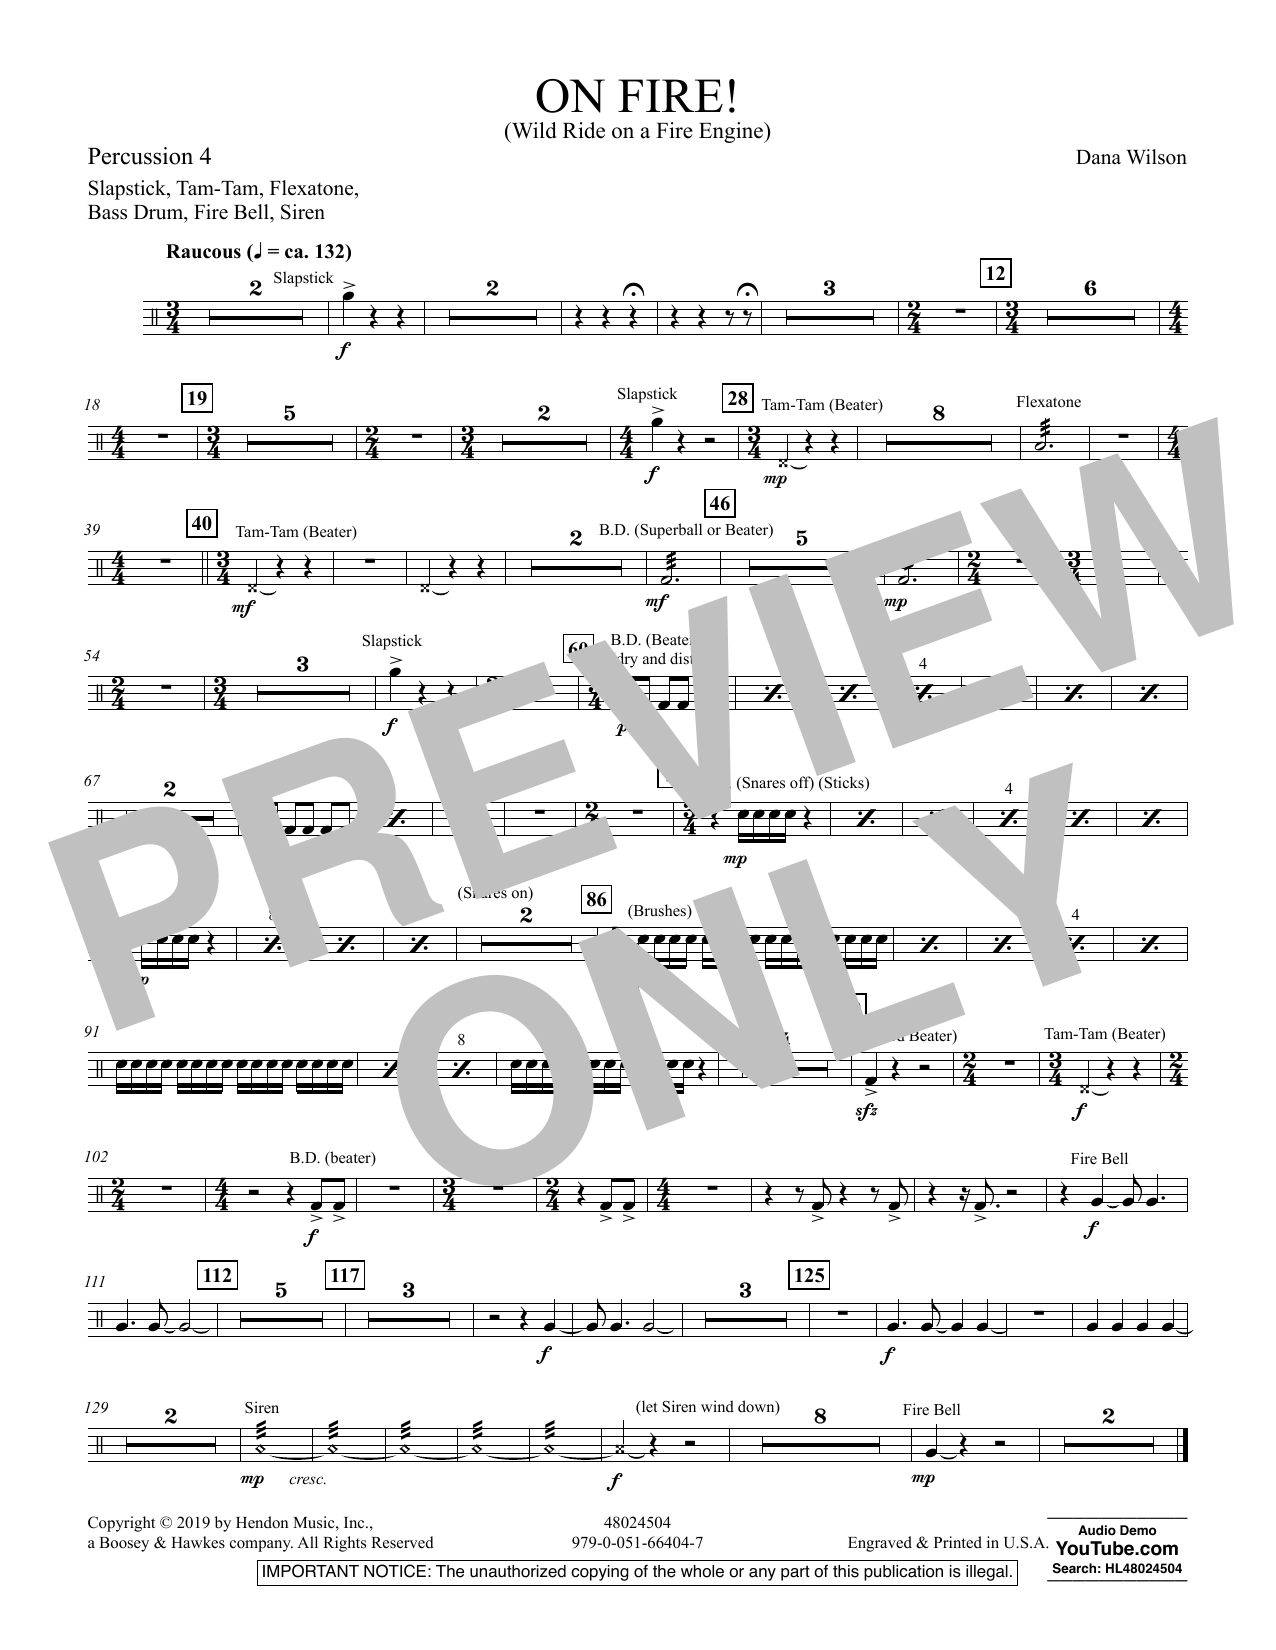 On Fire! (Wild Ride on a Fire Engine) - Percussion 4 (Concert Band)